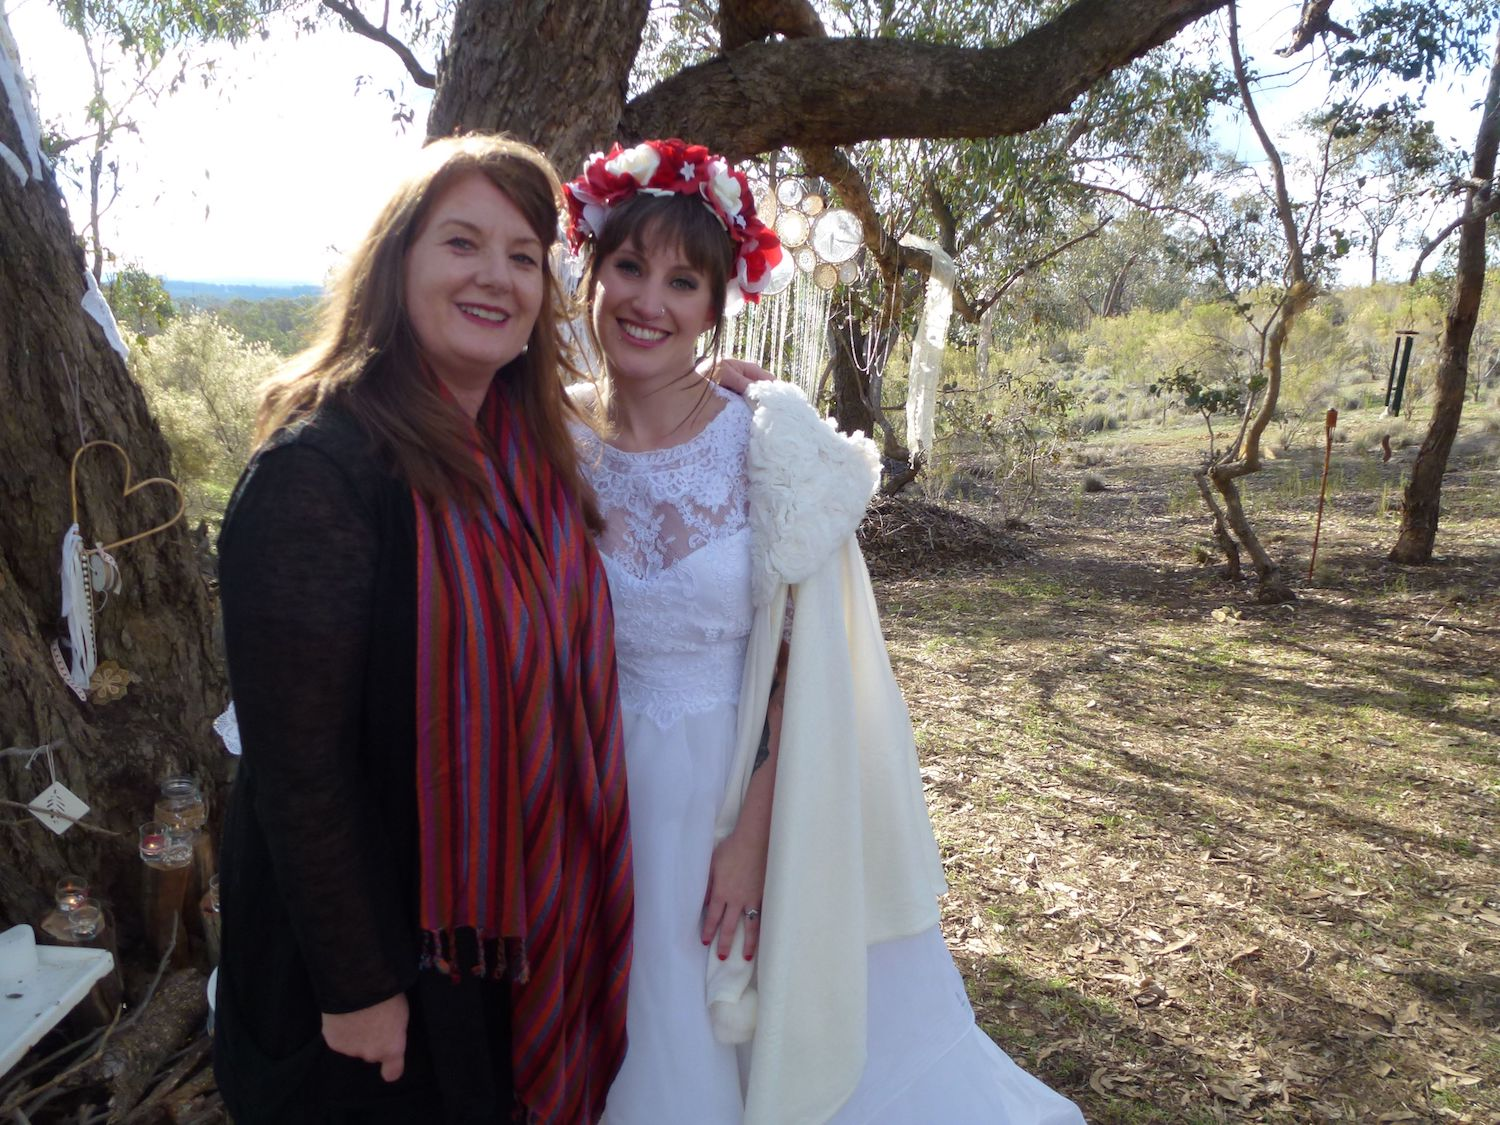 Genevieve Messenger Marriage Celebrant and funeral celebrant of Daylesford, Ballan, and Trentham with bride